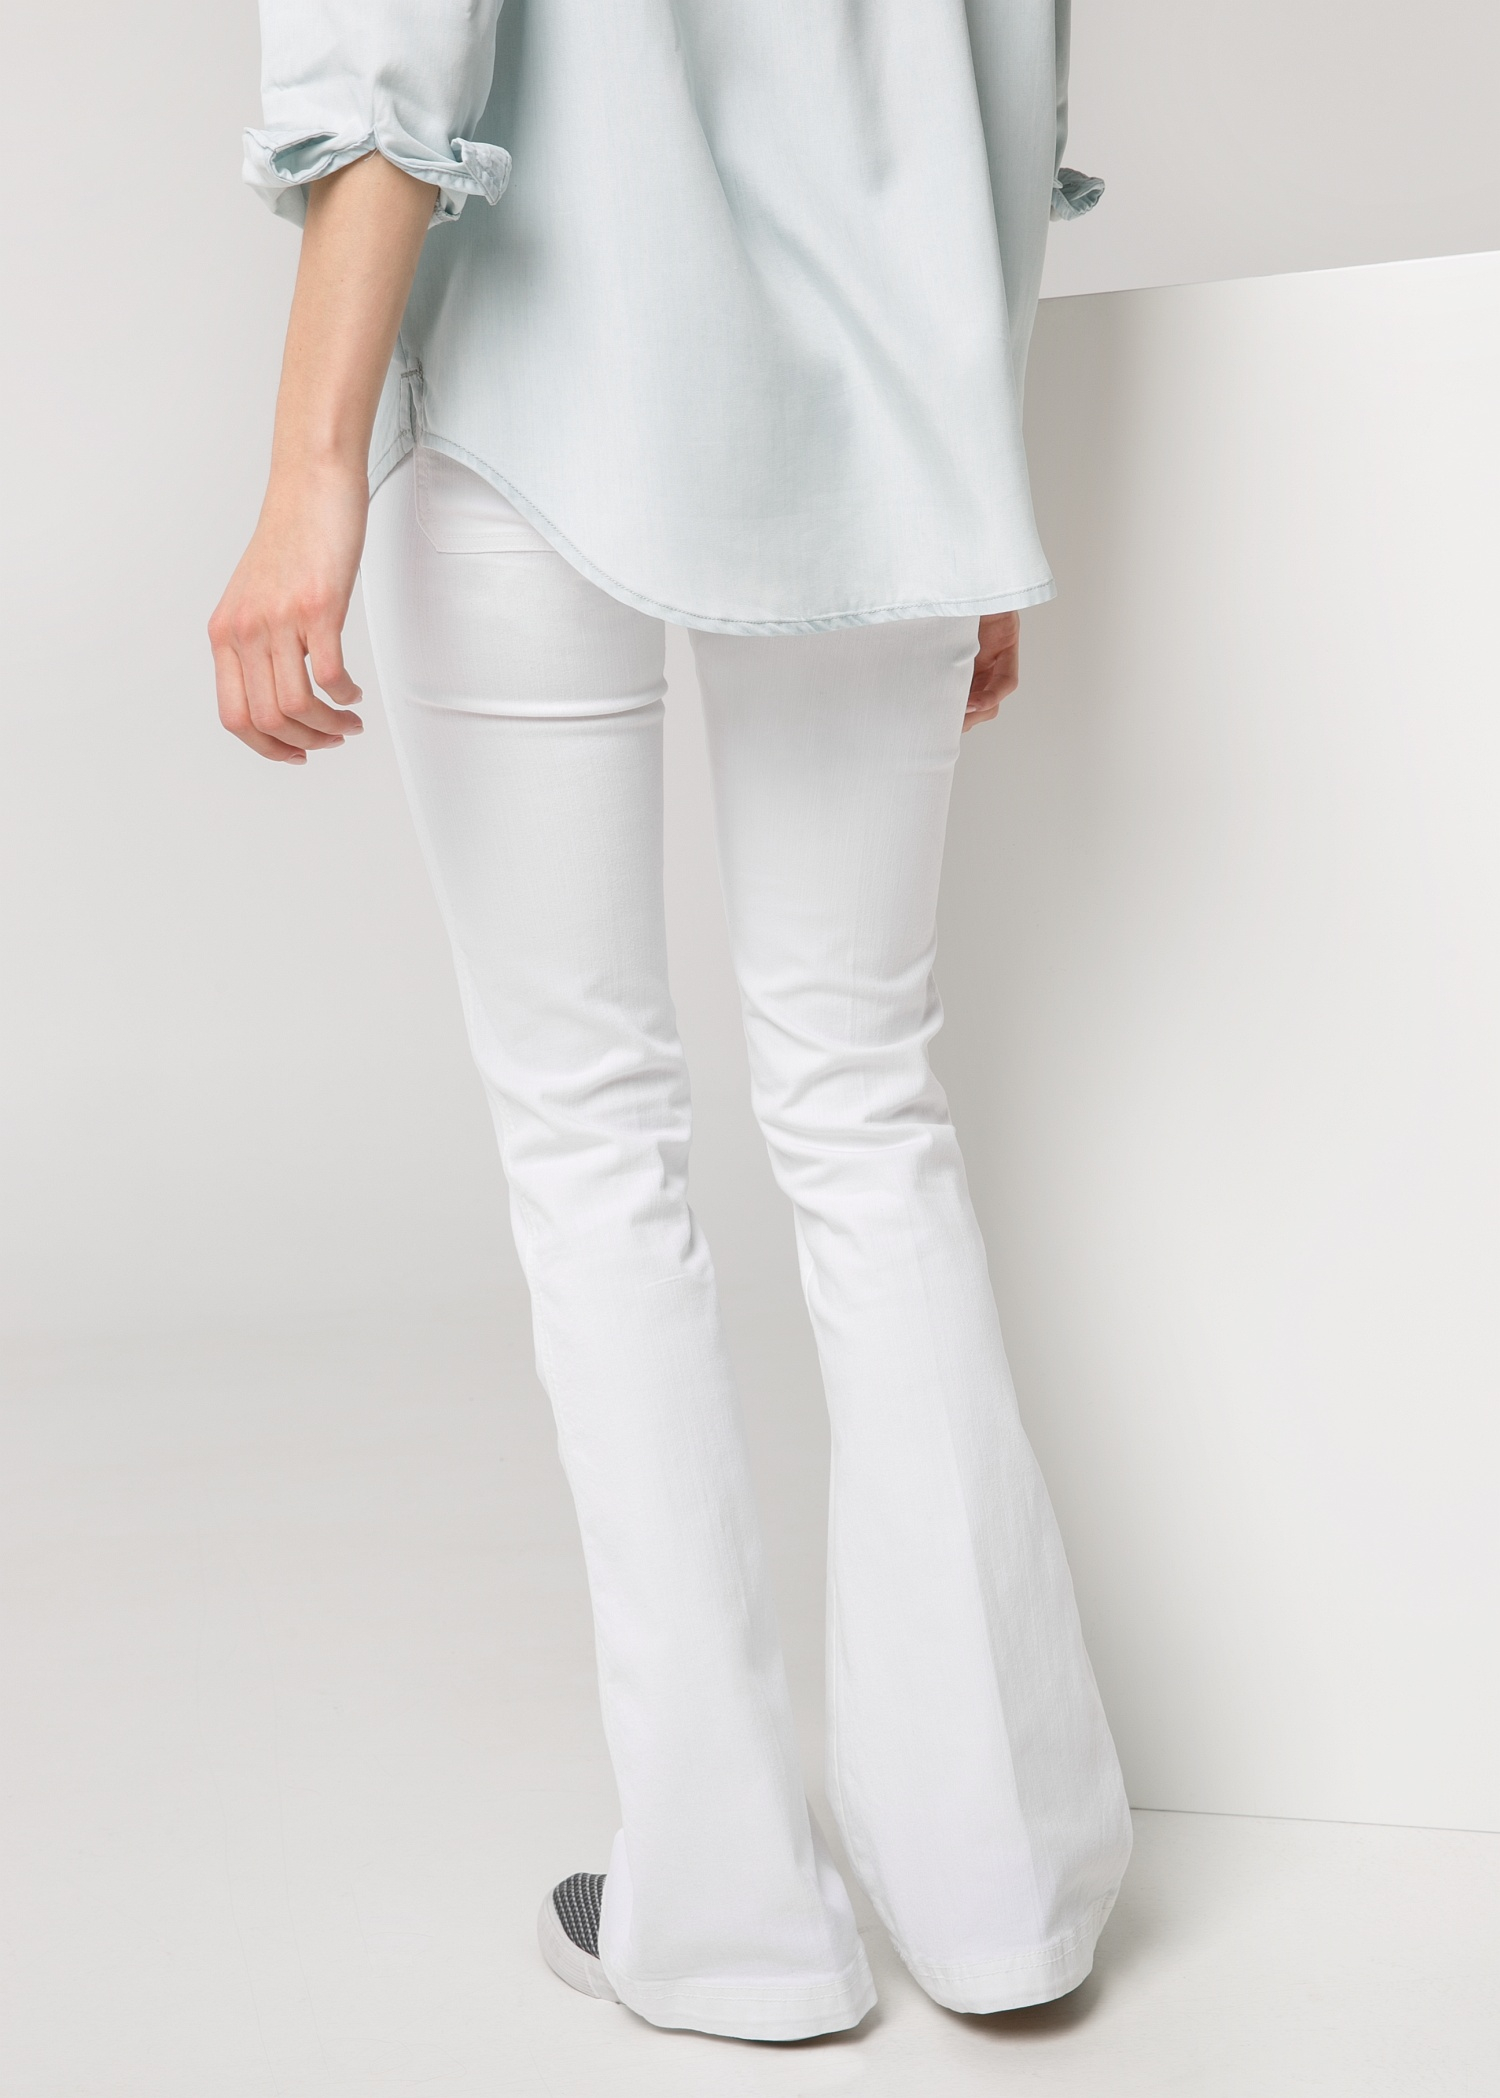 Mango Flared Flare Jeans in White | Lyst